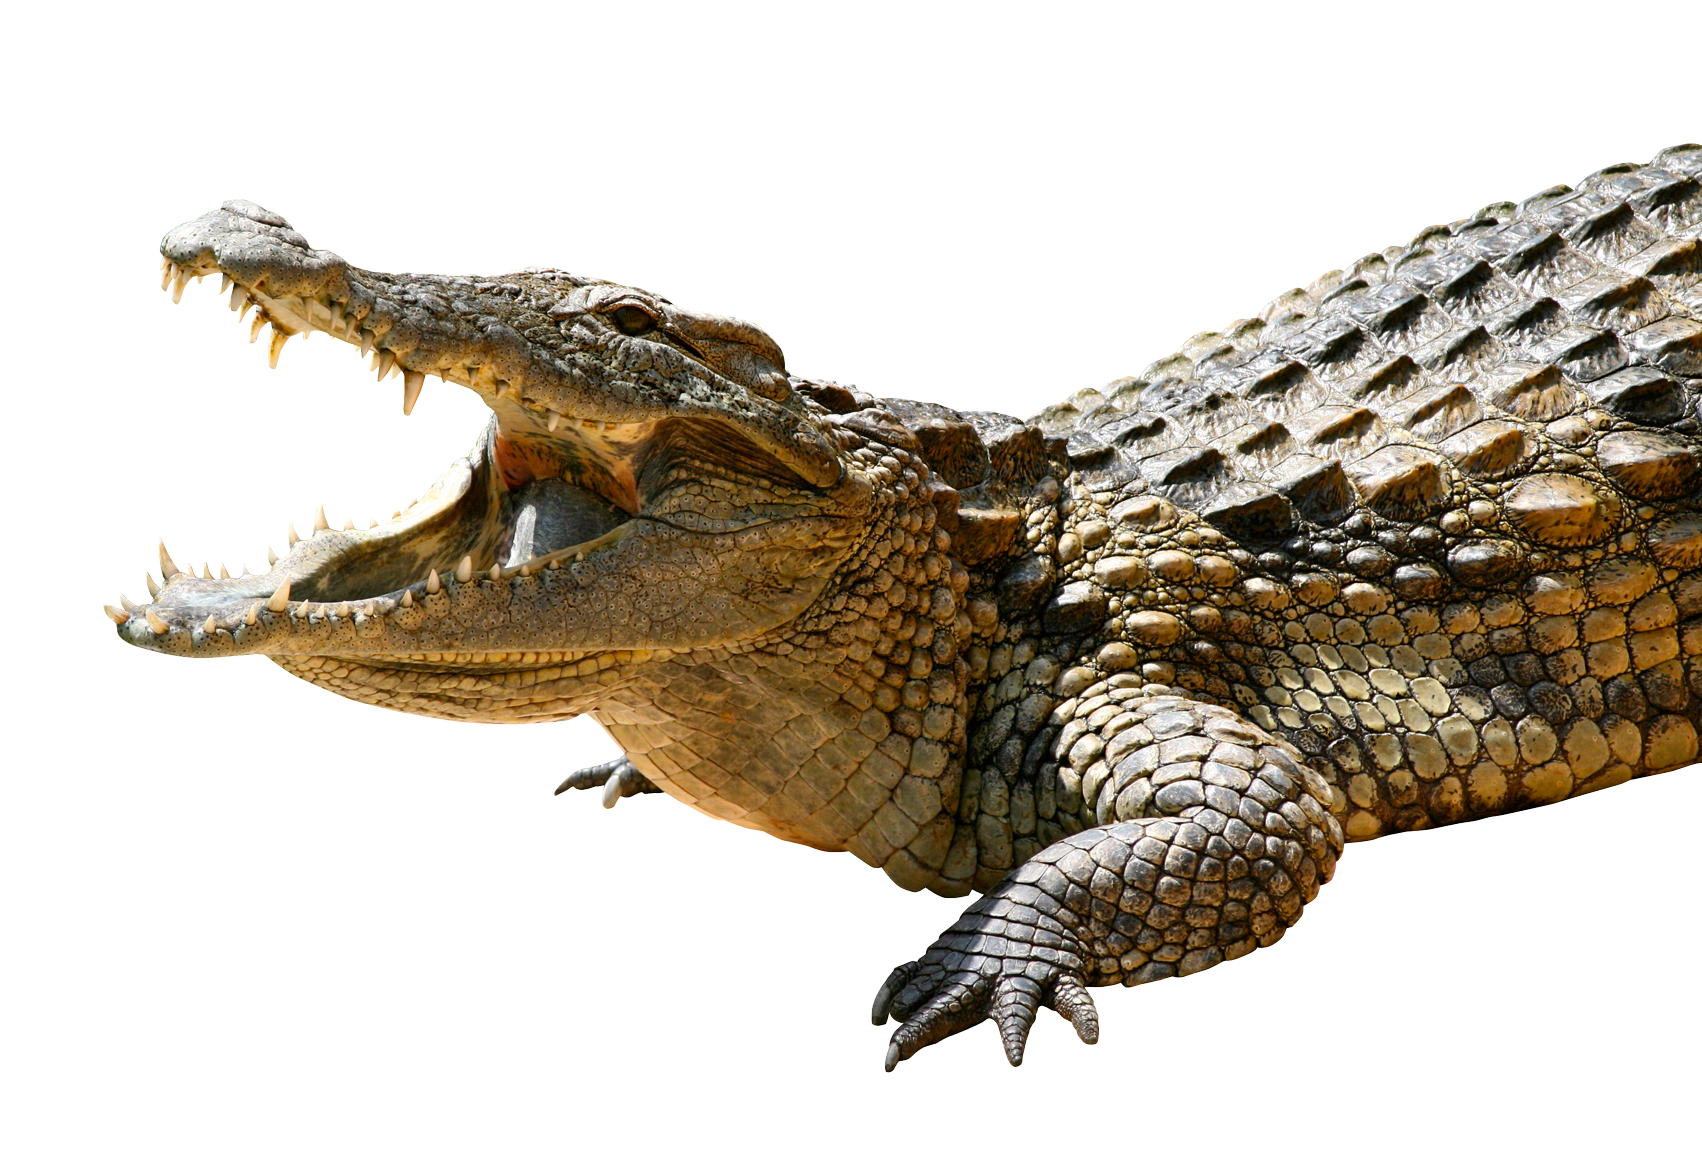 Crocodile PNG-PlusPNG pluspng pluspng.com-1702 - Crocodile PNG - Crocodile HD PNG - Crocodile PNG HD Images